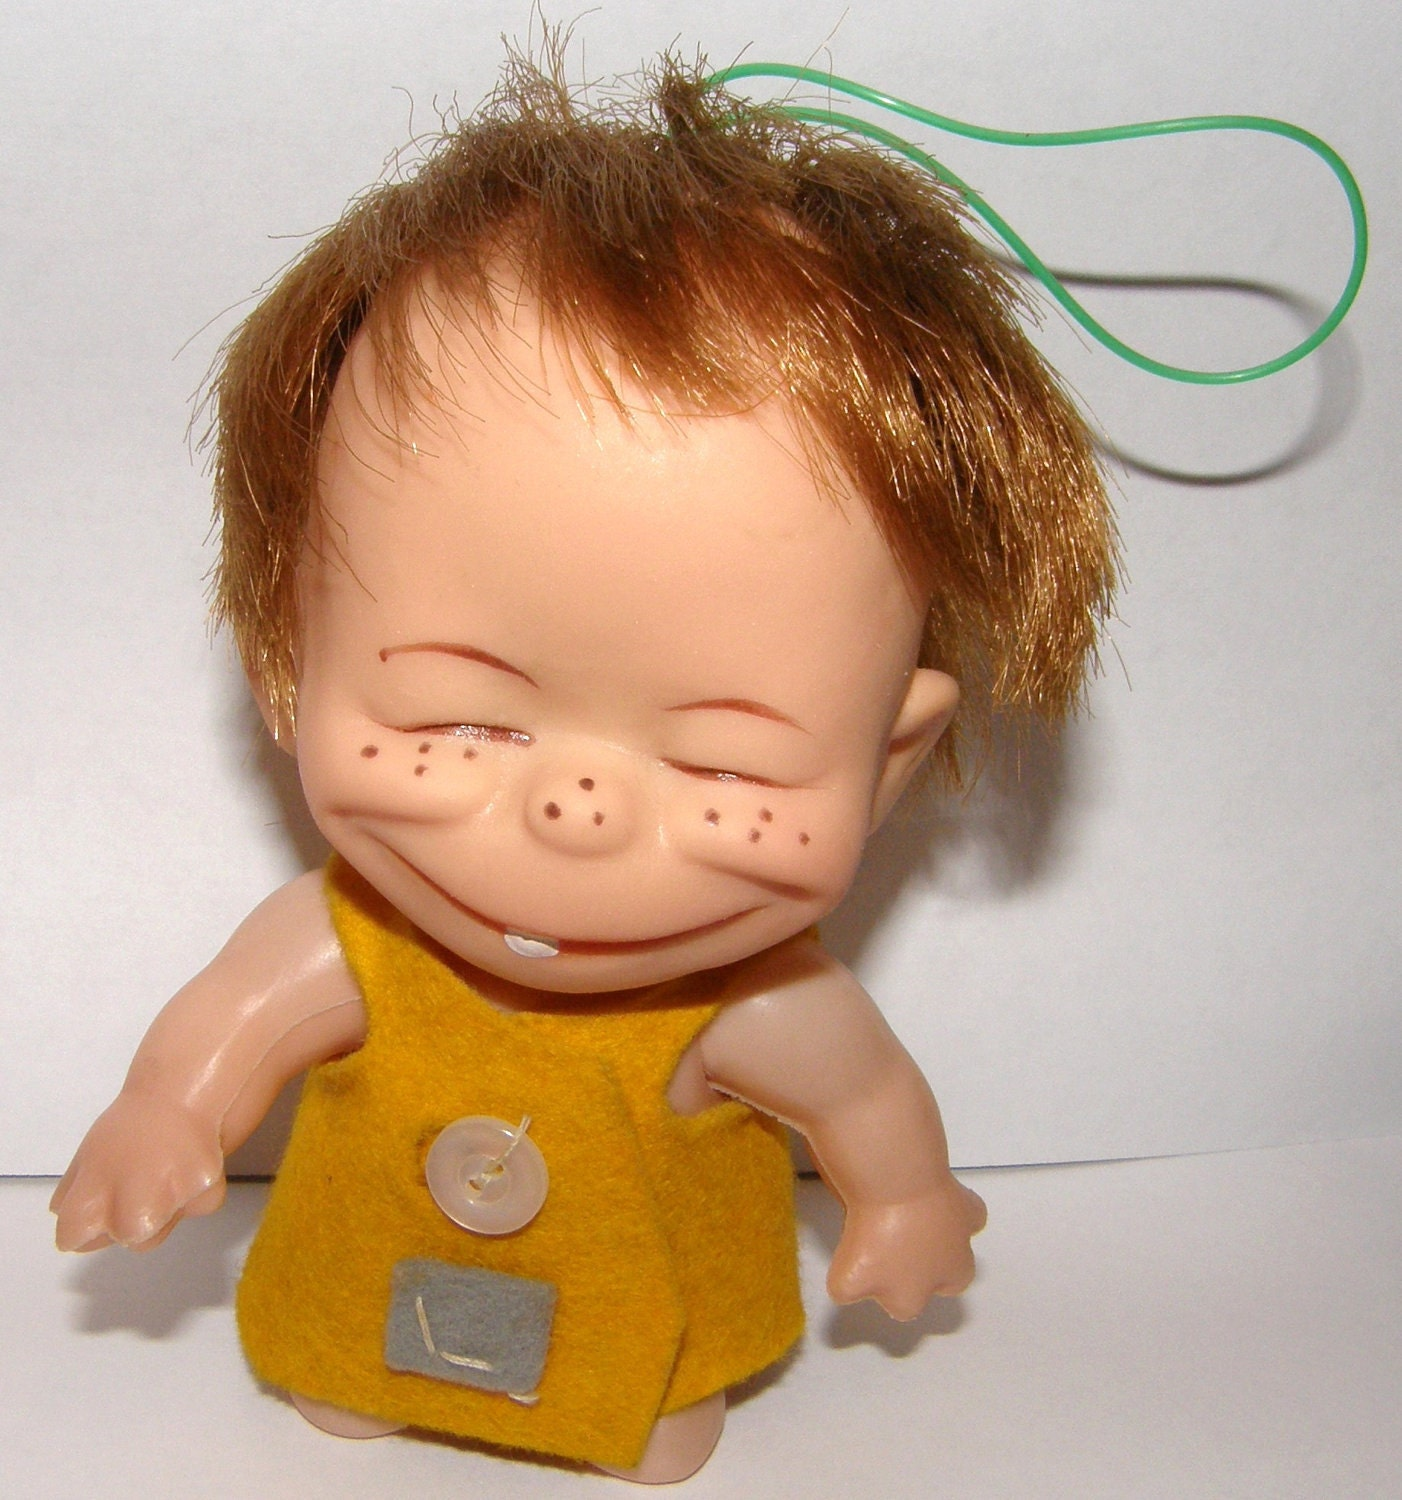 Cute Ugly Baby Boy Evil Chucky Doll Japan By Pattysoblessed